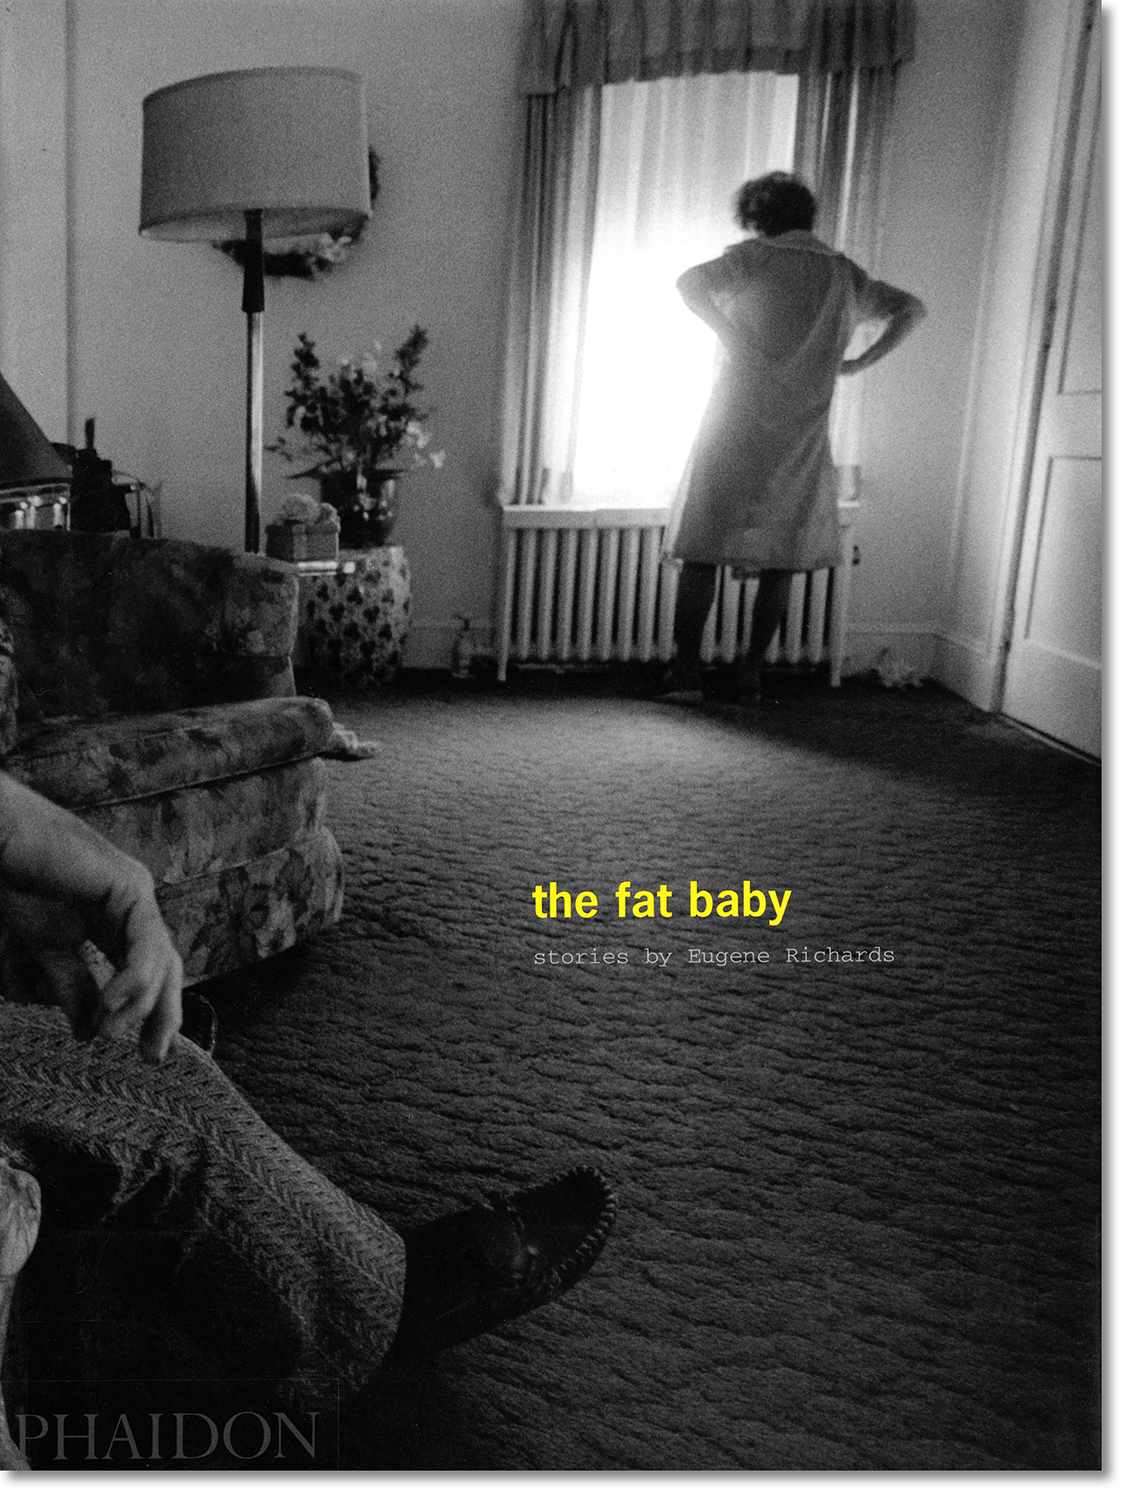 The Fat Baby   is a collection of boldly narrative stories that bear witness to the dramas of real life, while commenting on the times in which we live.  Phaidon, 2004